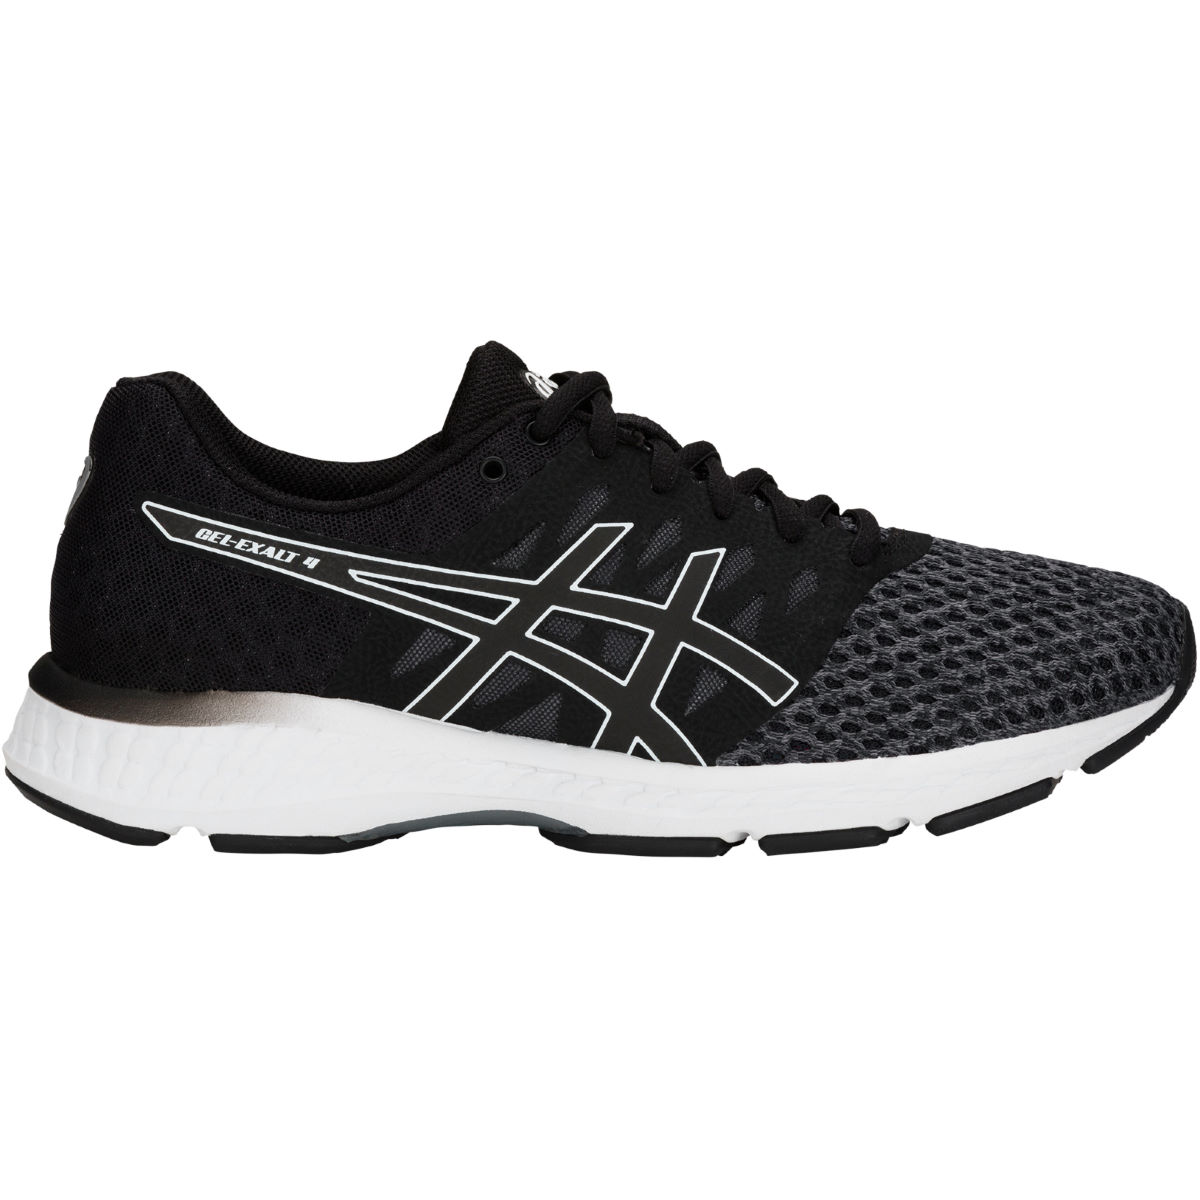 Chaussures Femme Asics Gel-Exalt - UK 5 Black/Carbon/Phantom